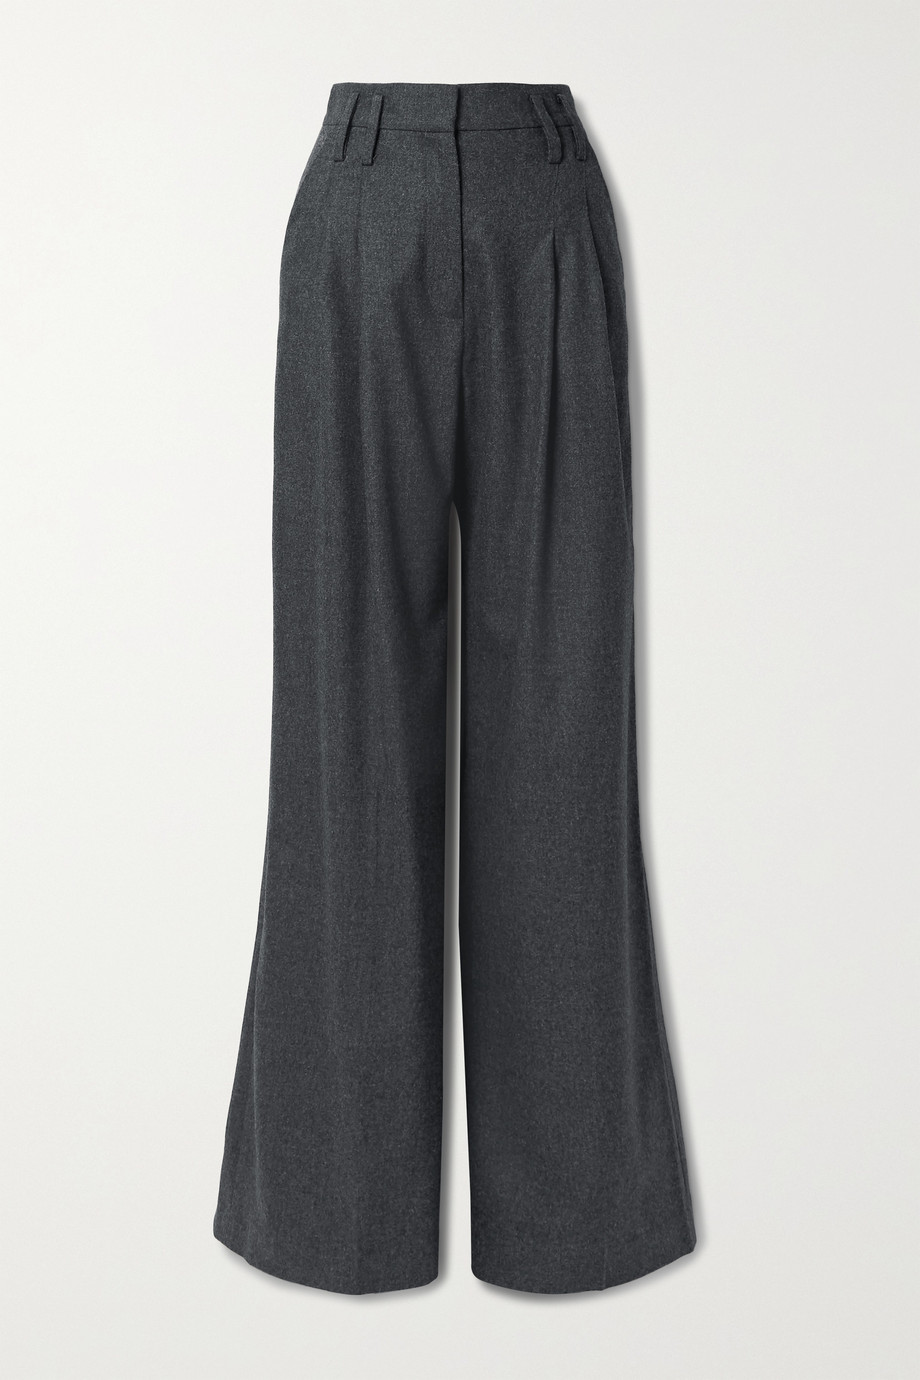 Racil Maxime wool-blend wide-leg pants